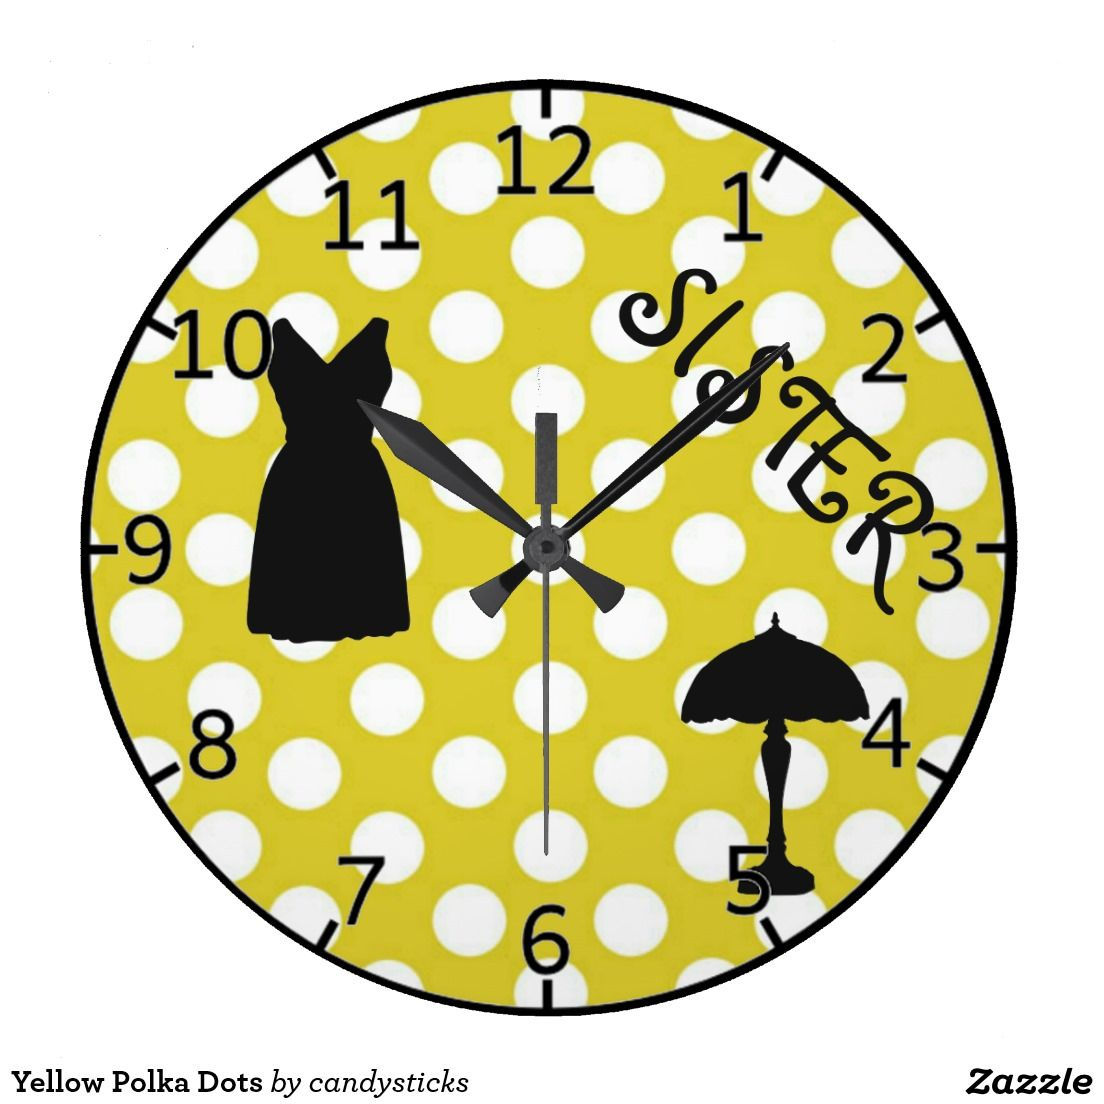 Yellow Polka Dots http://www.zazzle.com/yellow_polka_dots-256919654098561033?rf=238703308182705739